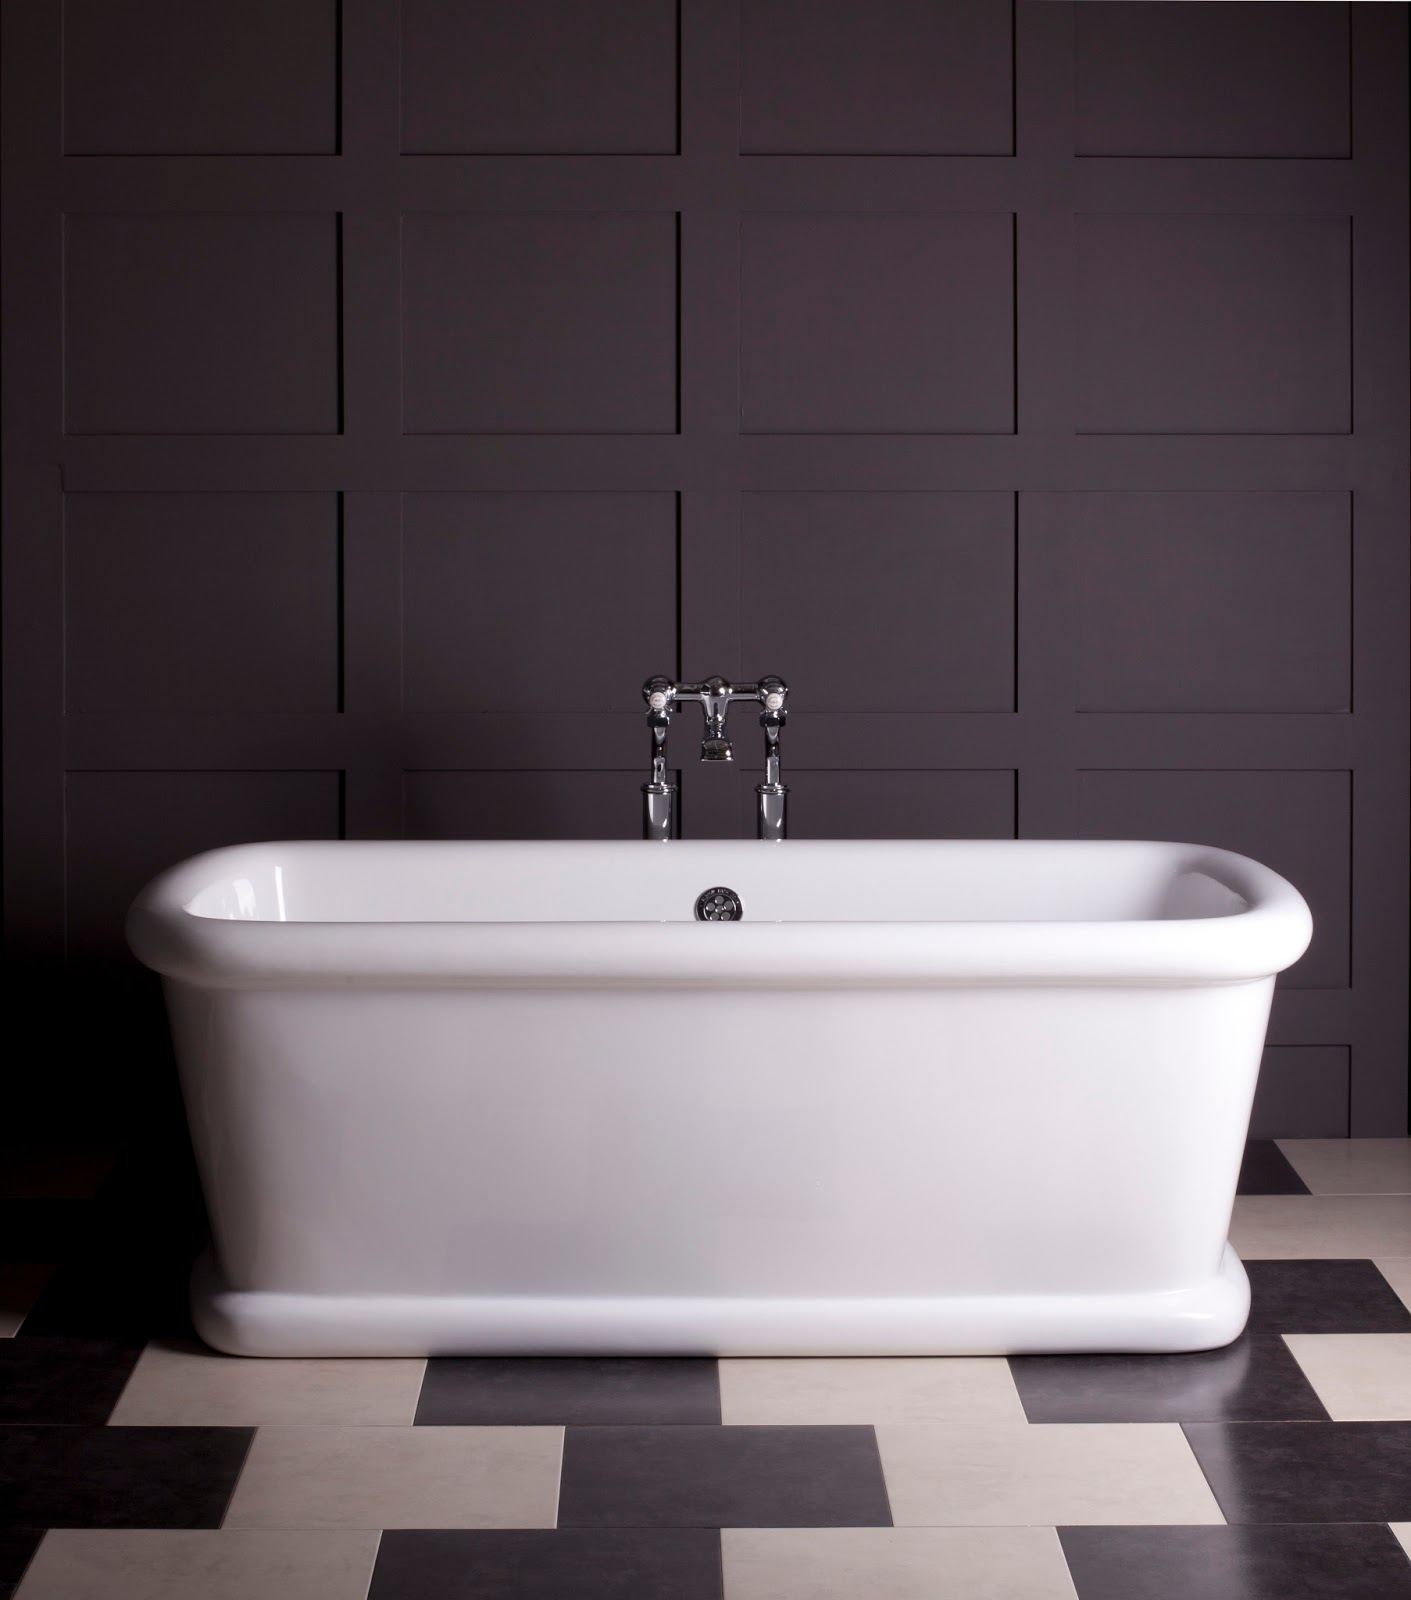 The albion bath company ltd small free standing bath tubs - Soaking tubs for small bathrooms ...